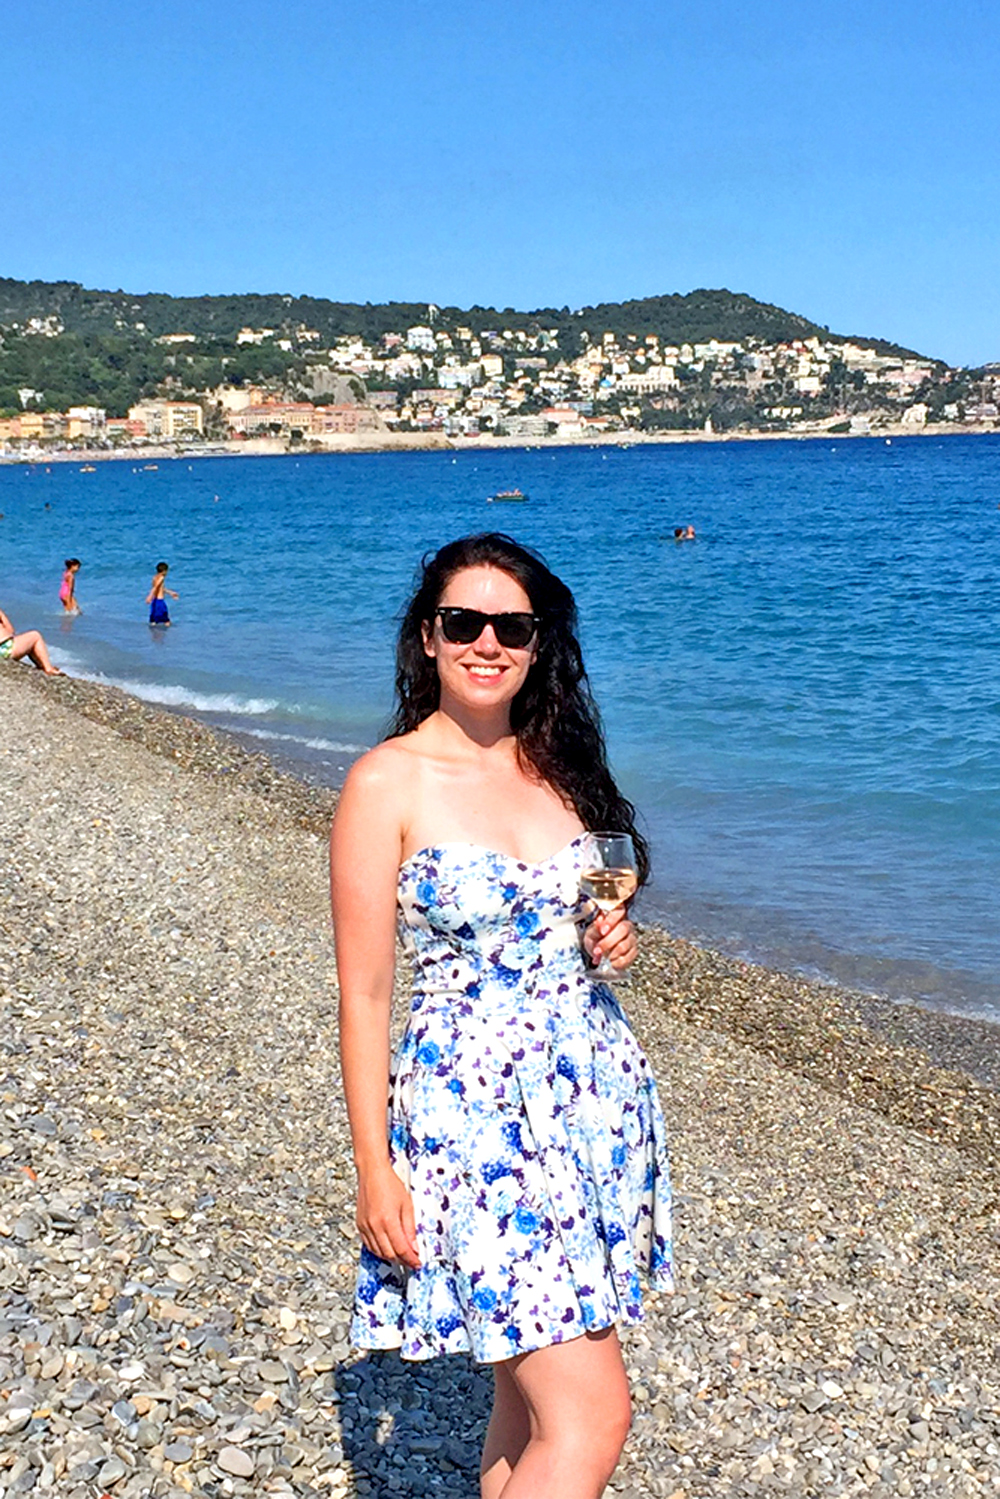 Le Voilier Plage, Nice - France travel & style blog